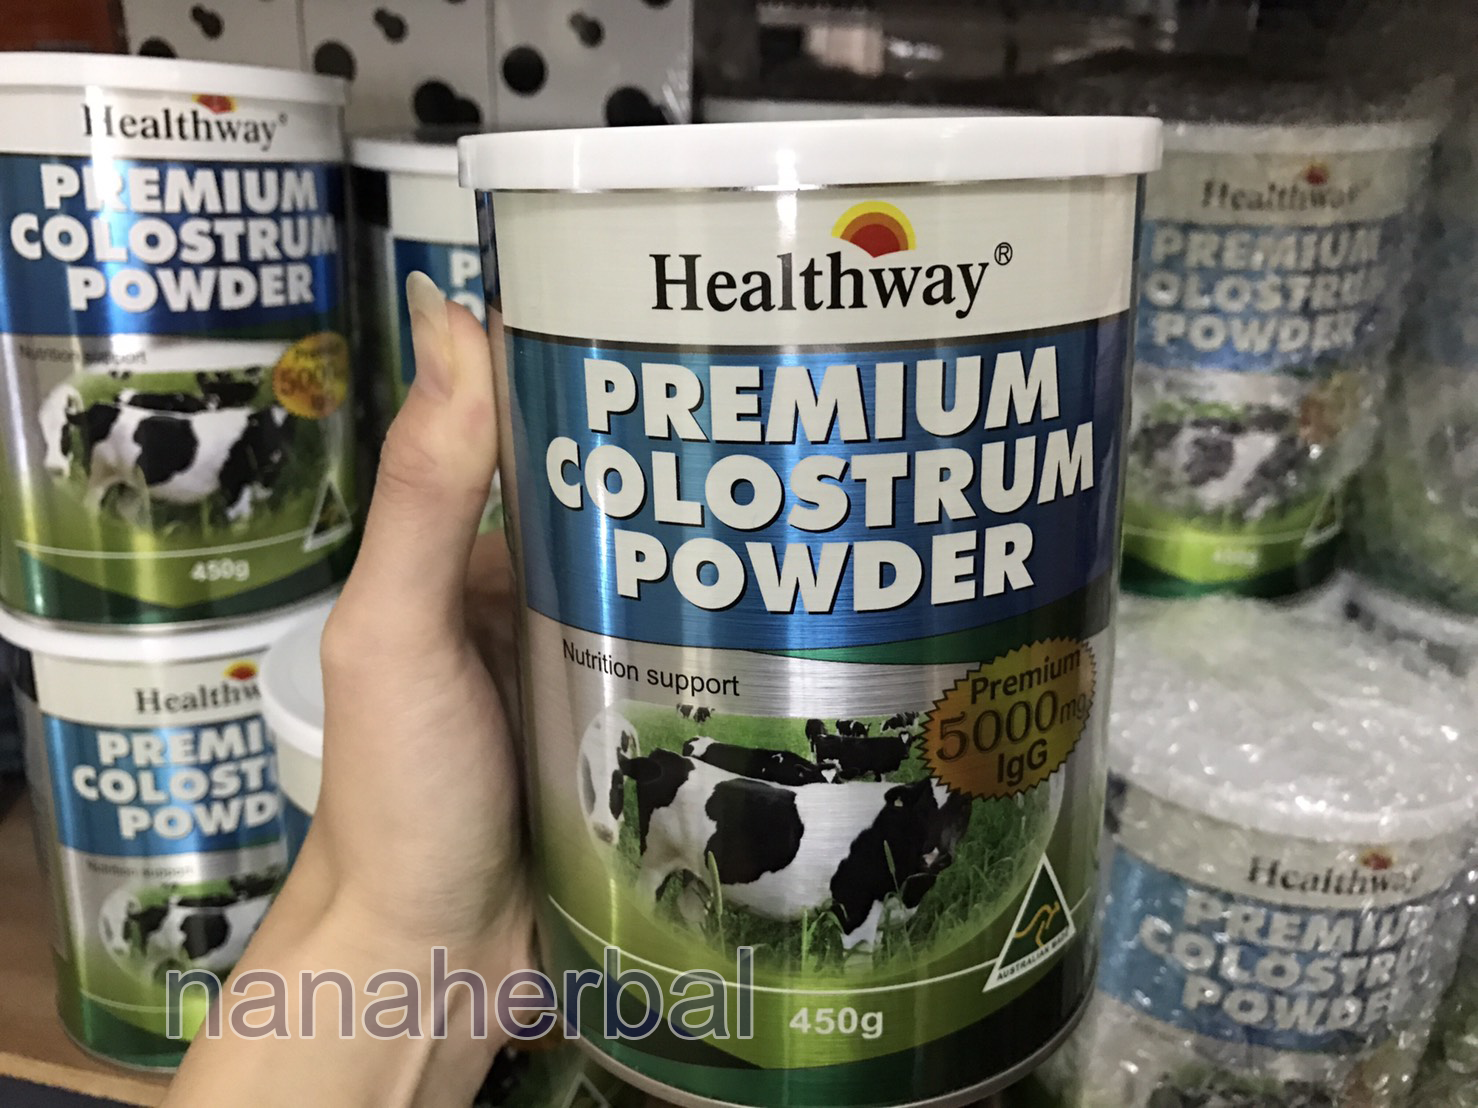 HEALTHWAY PREMIUM COLOSTRUM POWDER 5000lgg